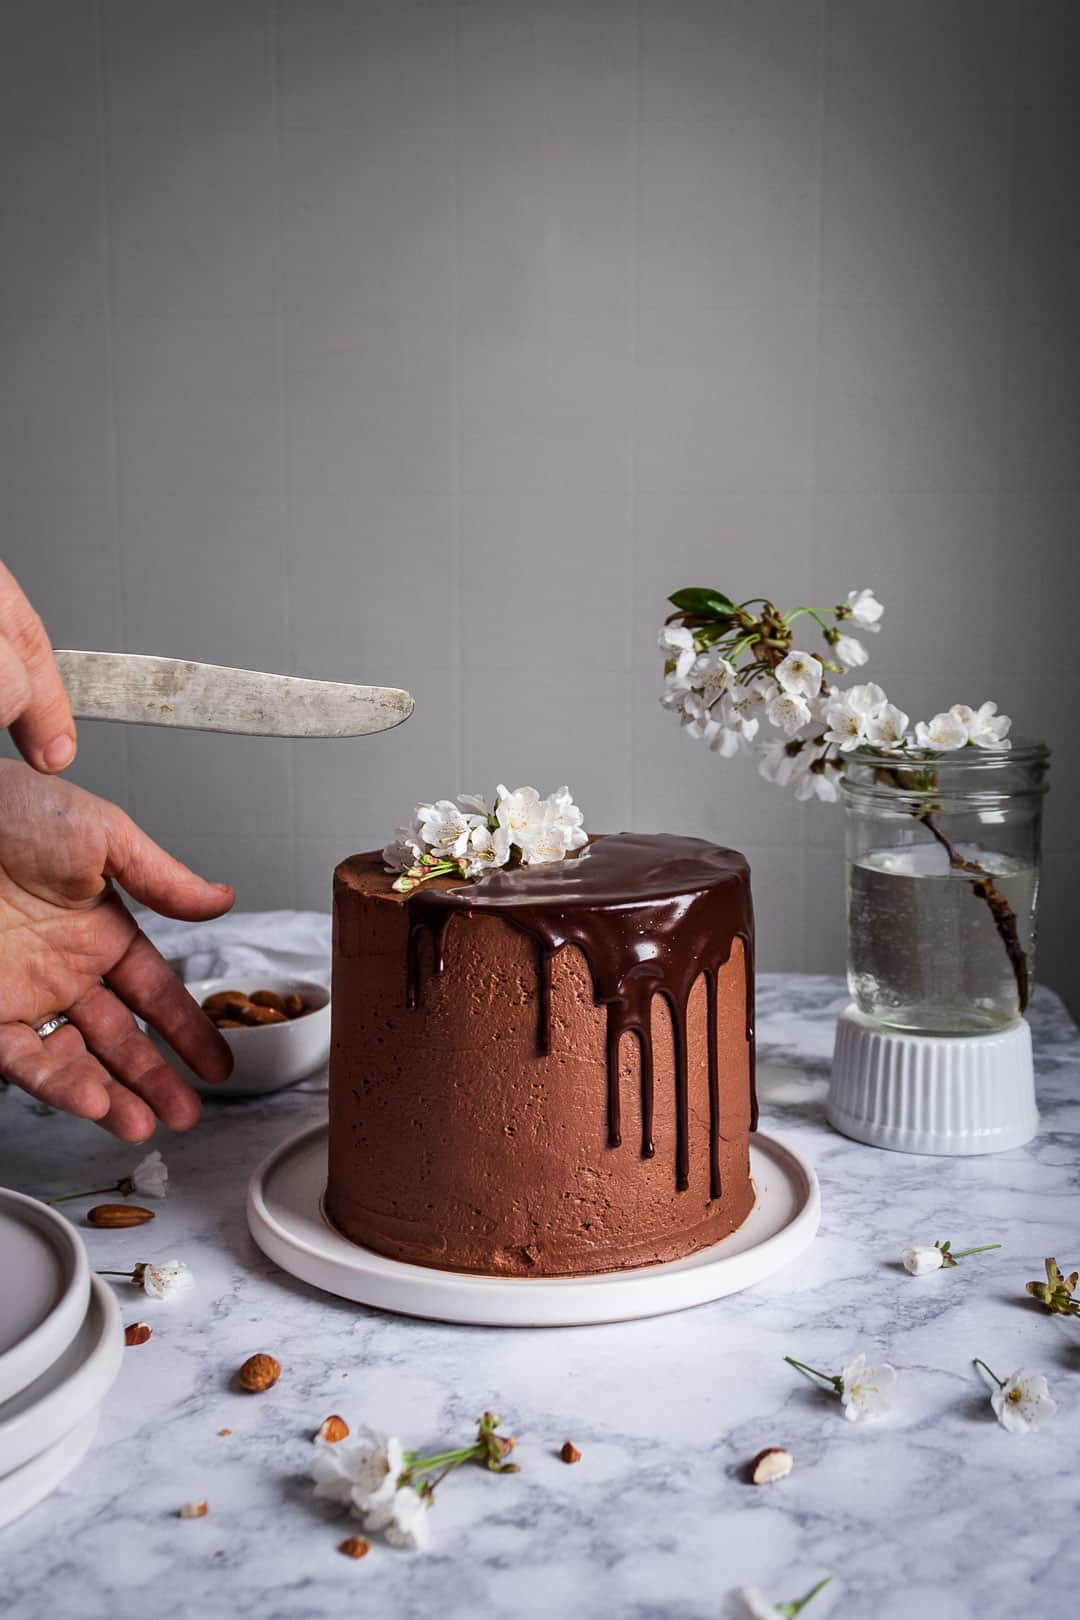 hands holding a knife and reaching out towards marzipan cake with dark chocolate buttercream sitting on a marble surface